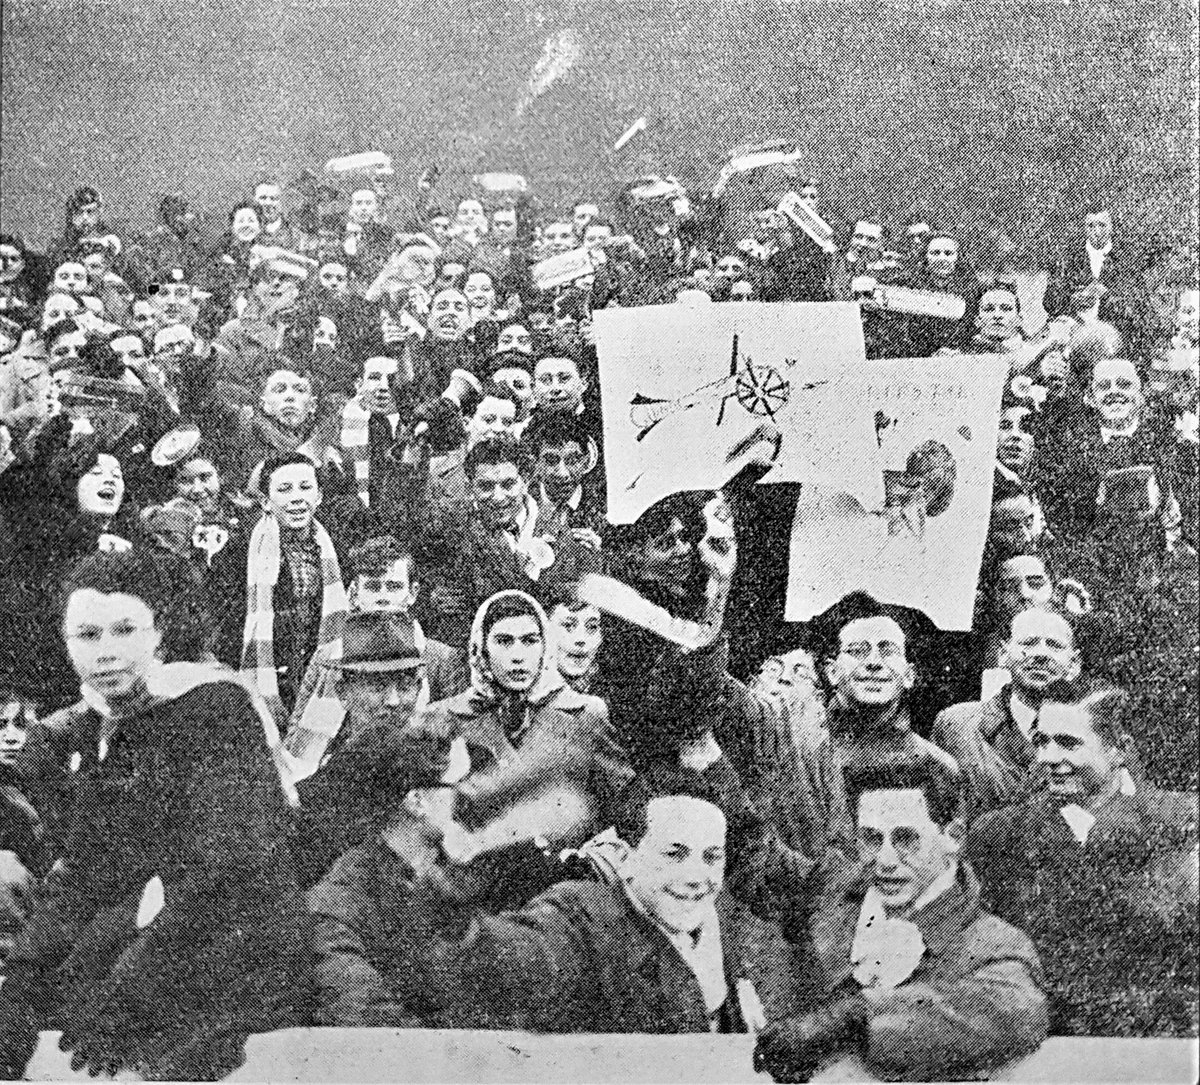 Rattles, rosettes and homemade signs: #Arsenal fans at a 1950-51 away match (from @AFSCLondon&#39;s Gunflash. February 1951). #AFC<br>http://pic.twitter.com/1M8K5hezXx